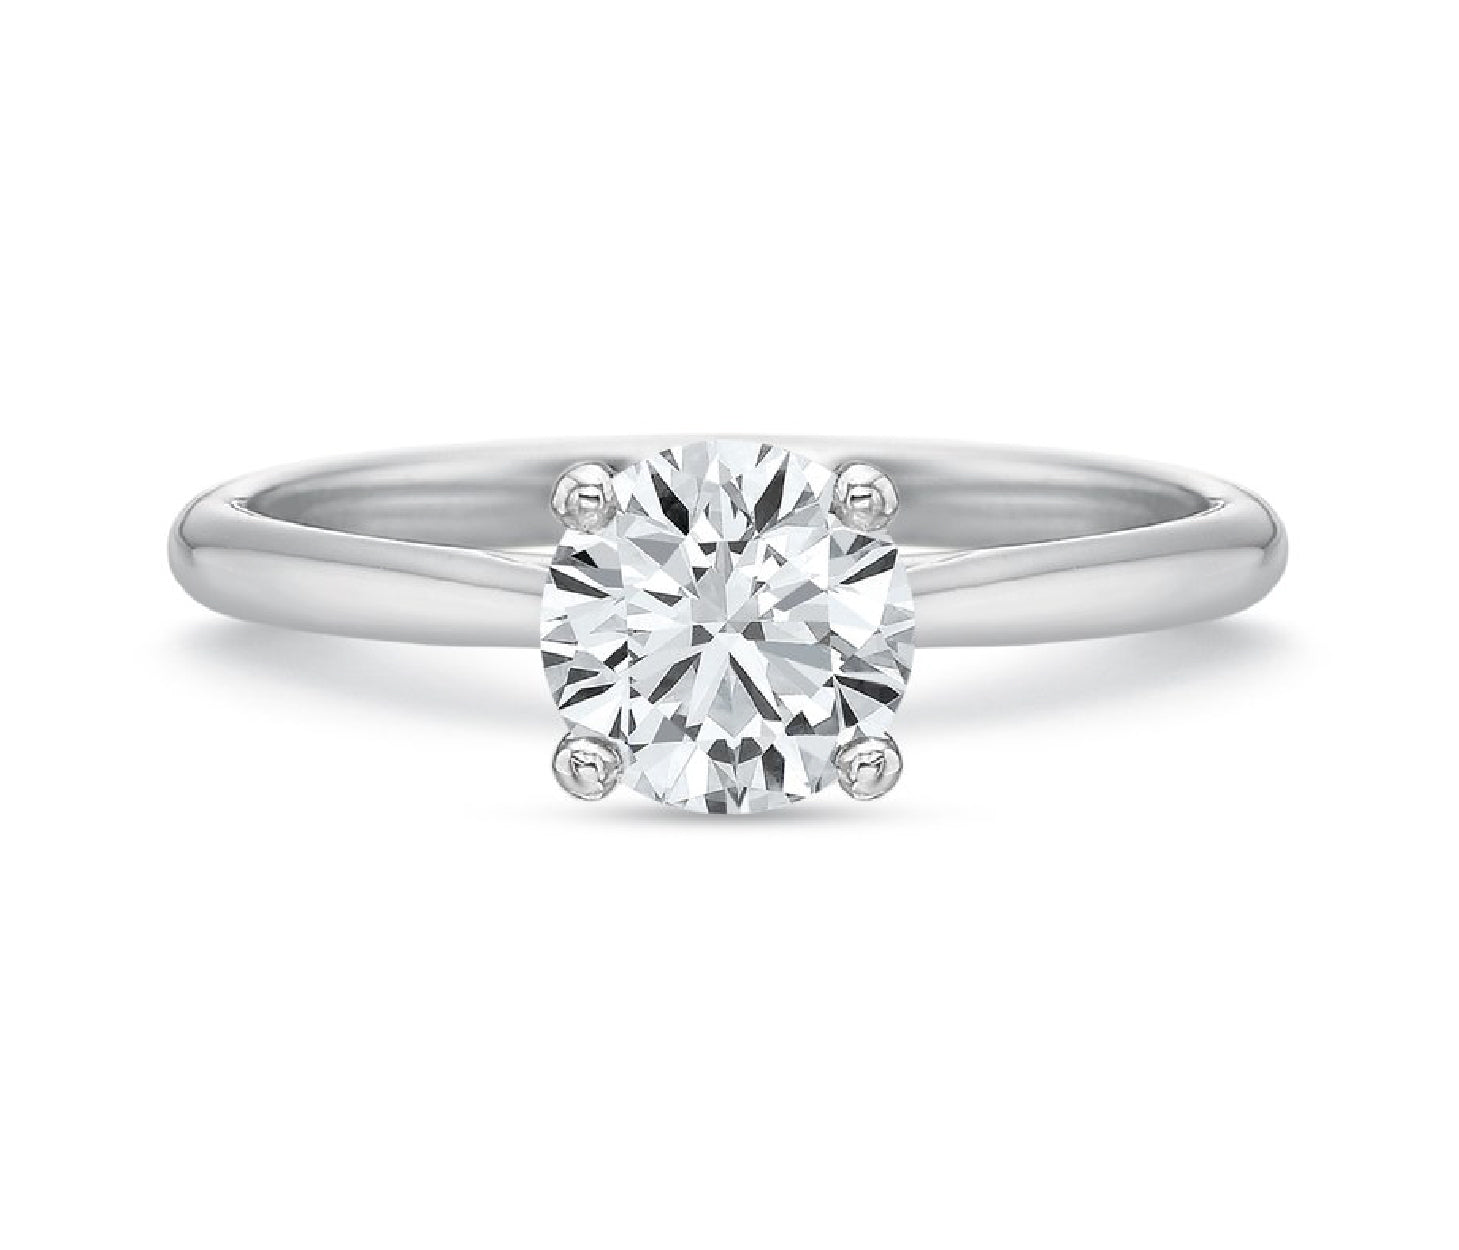 14K White Gold Classic Four Prong Engagement Ring